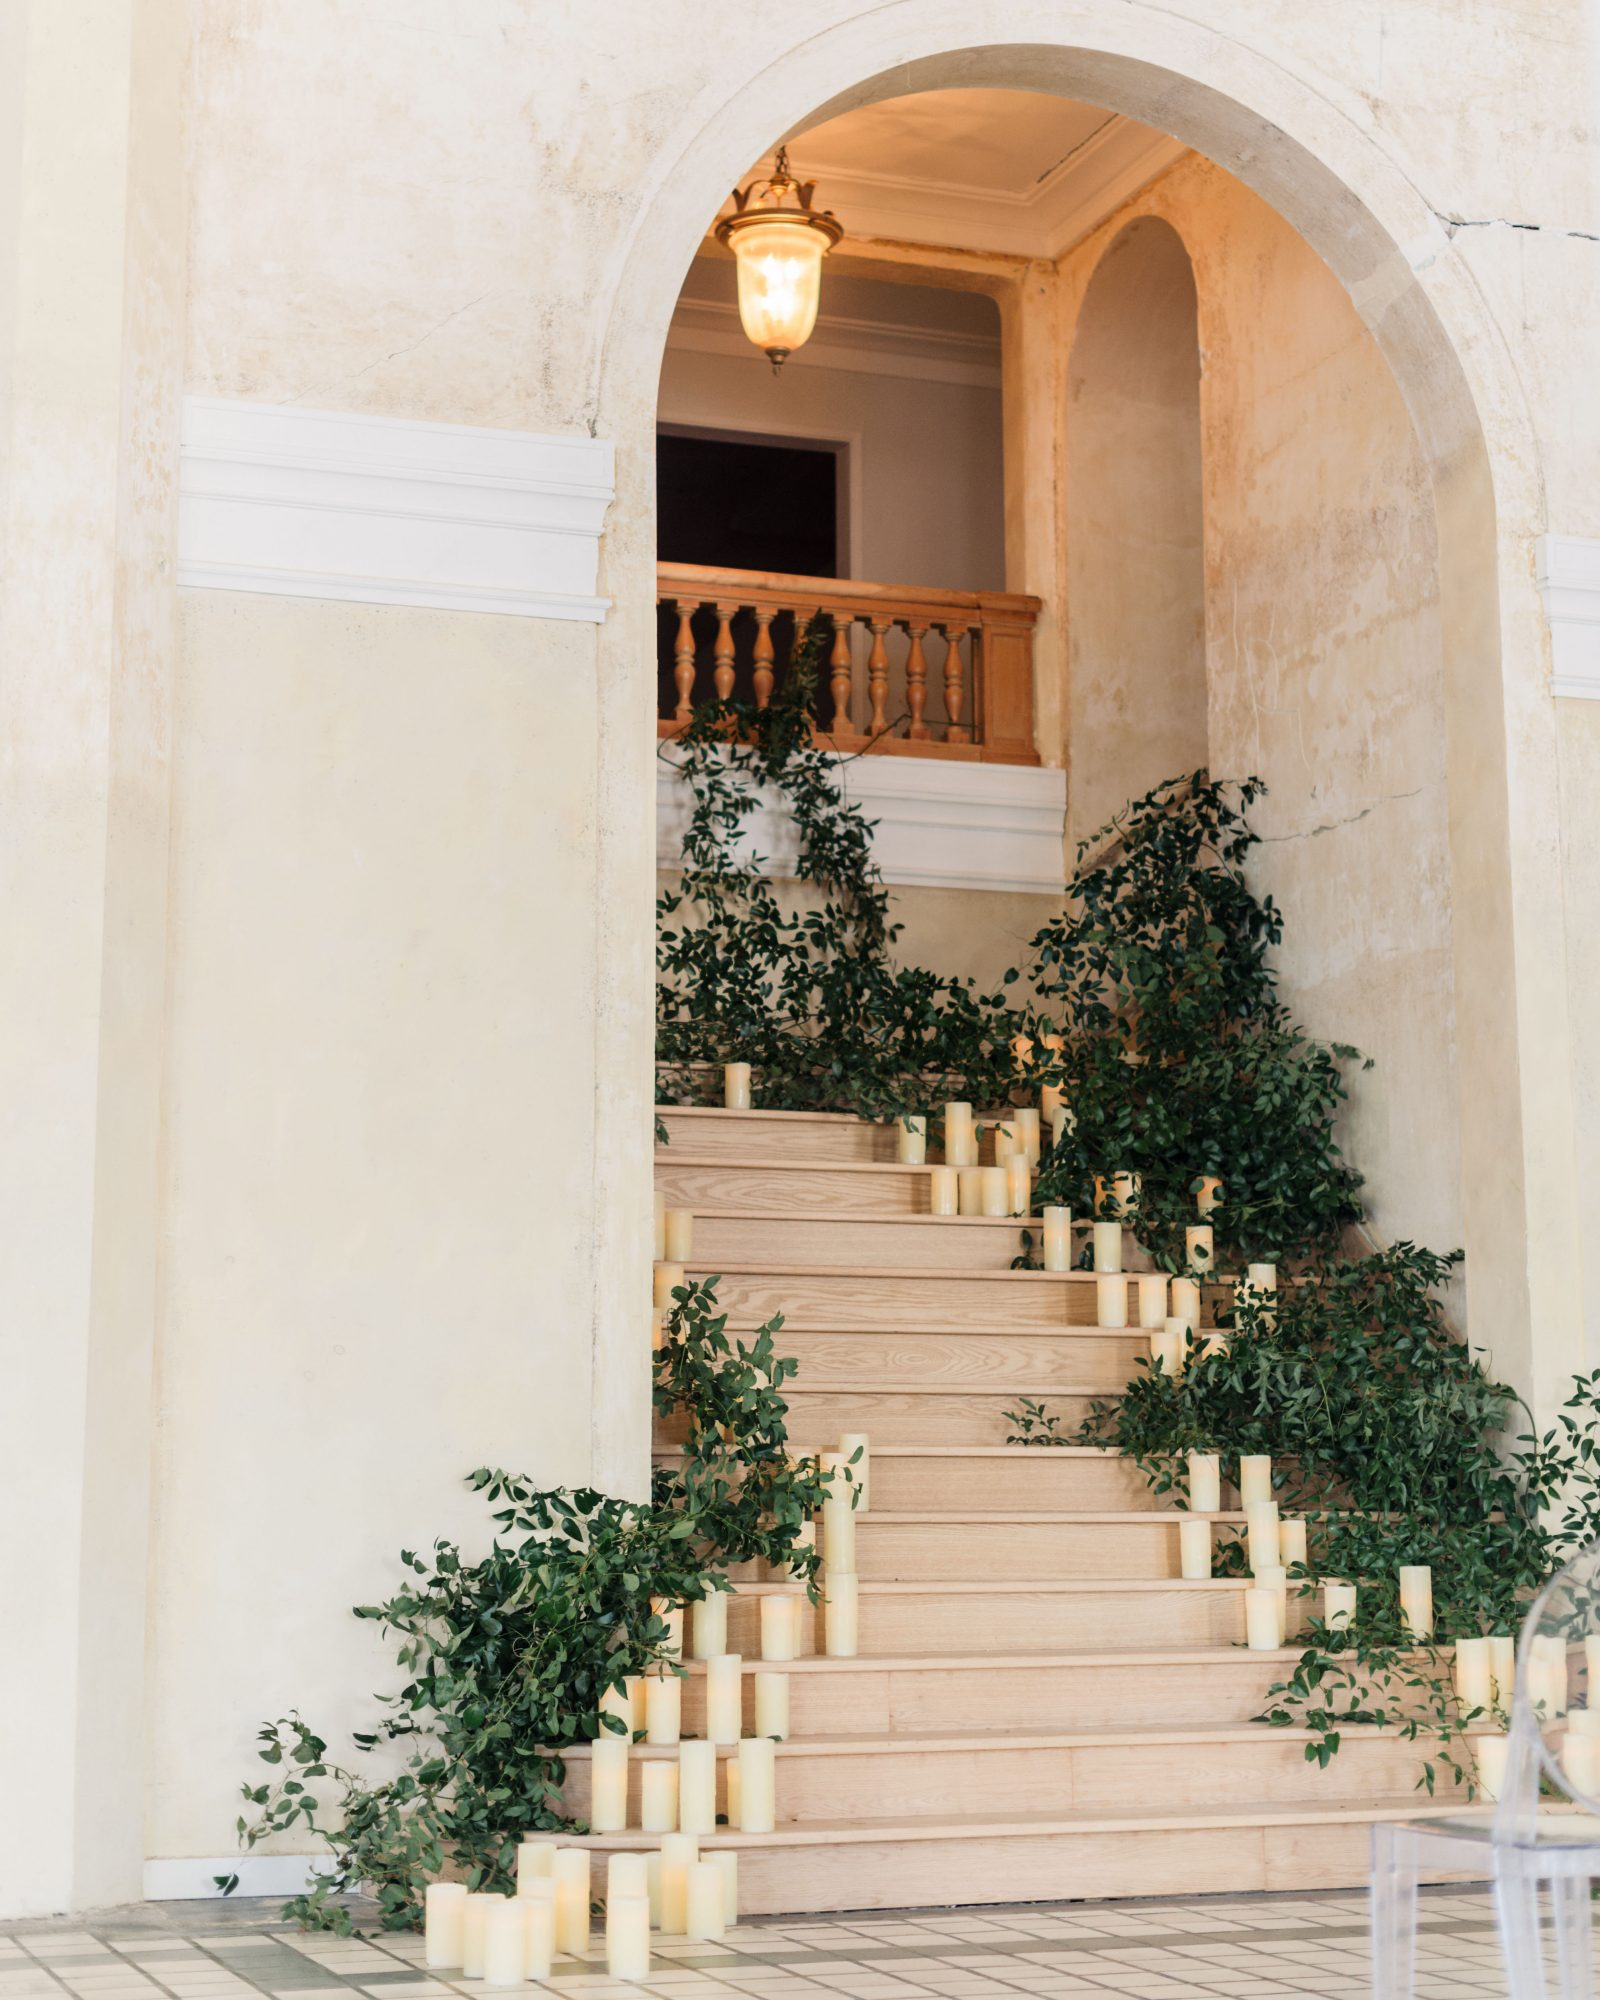 stair banister decor candles greenery arch entry